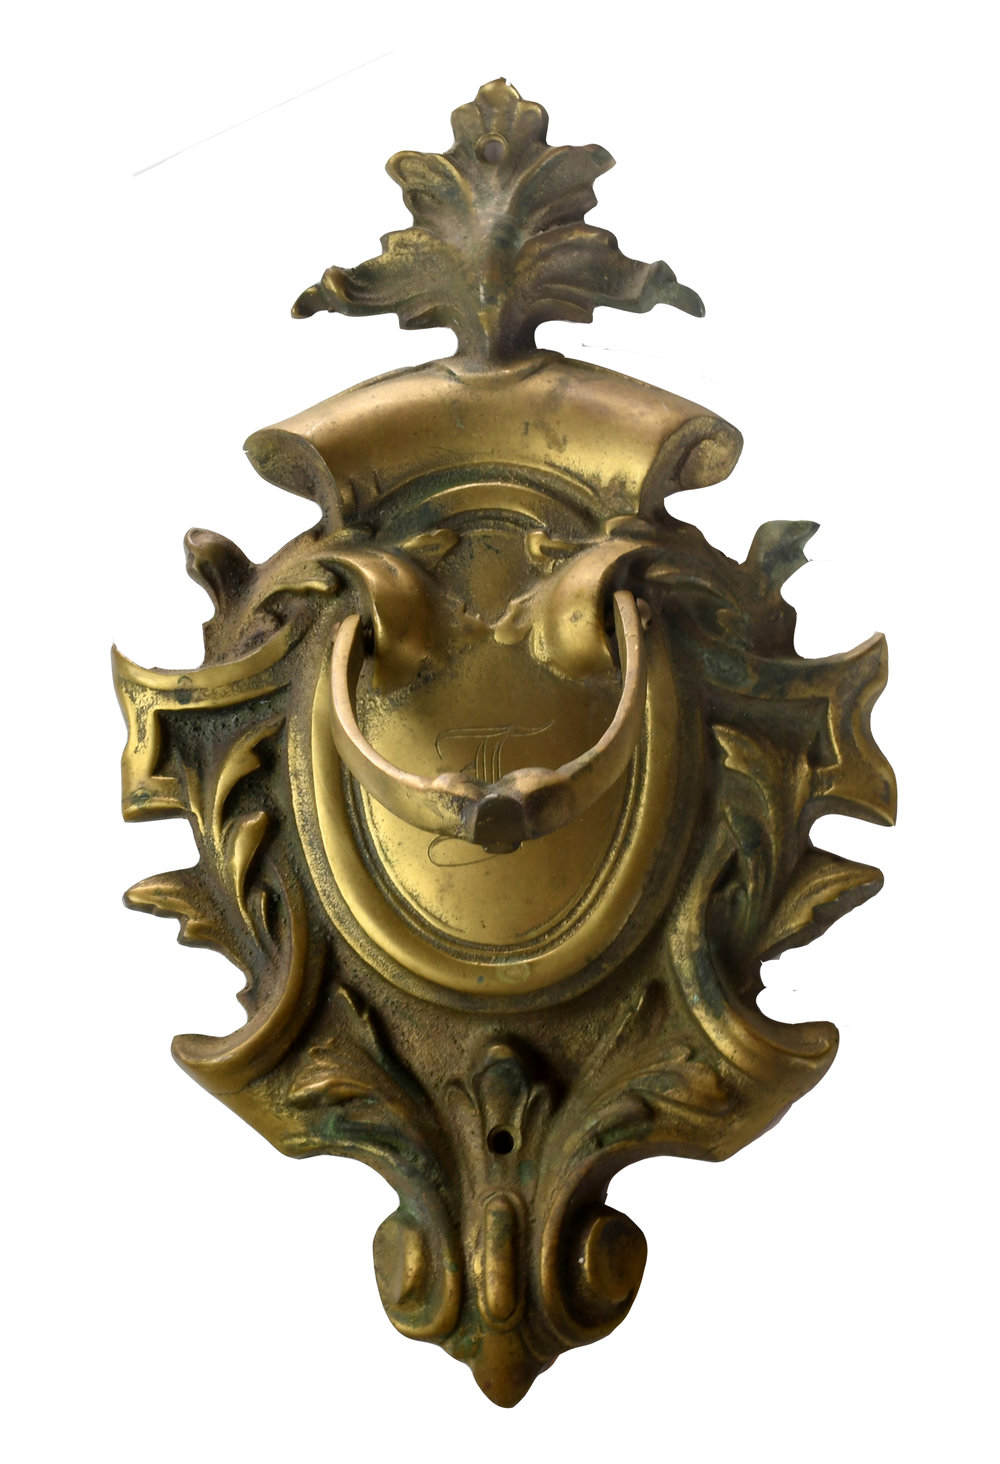 H20173-cast-brass-victorian-doorknocker-35.jpg